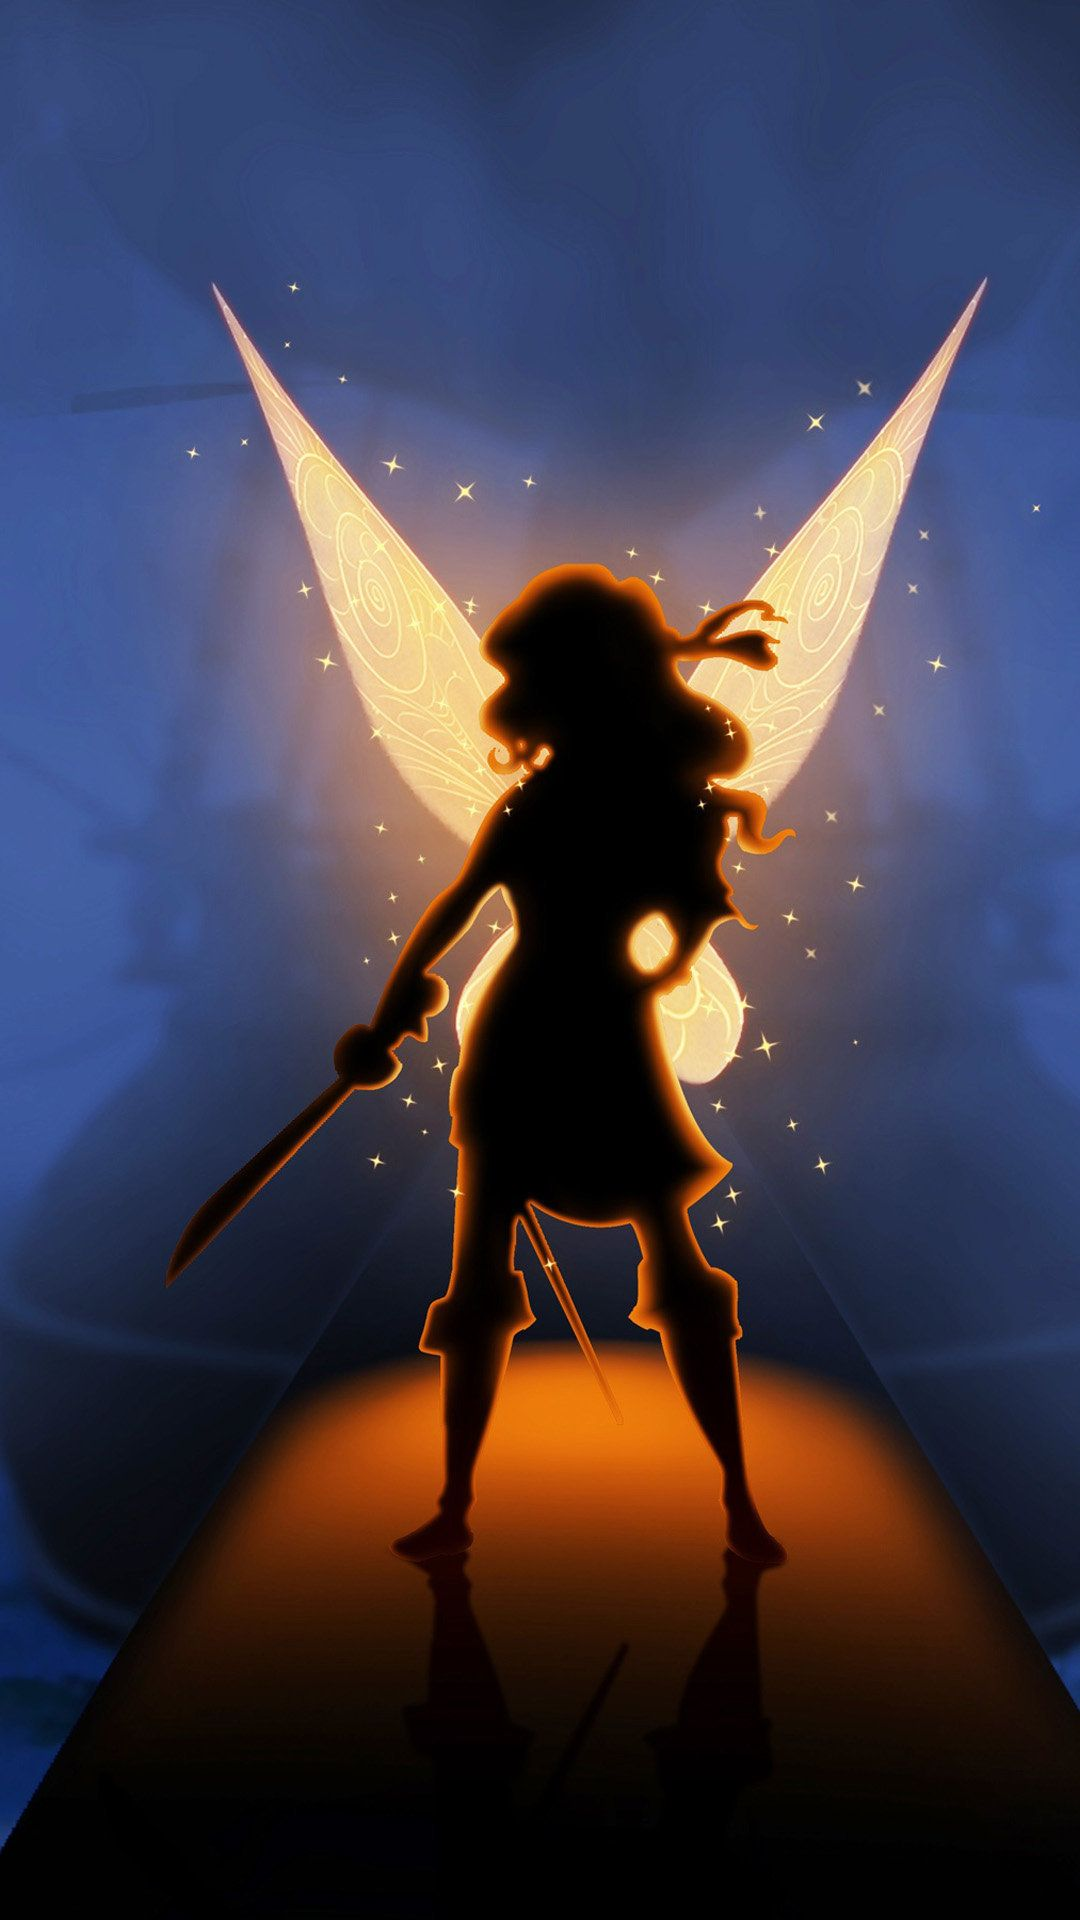 zarina pirate fairy silouhette Pirate fairy silhouette